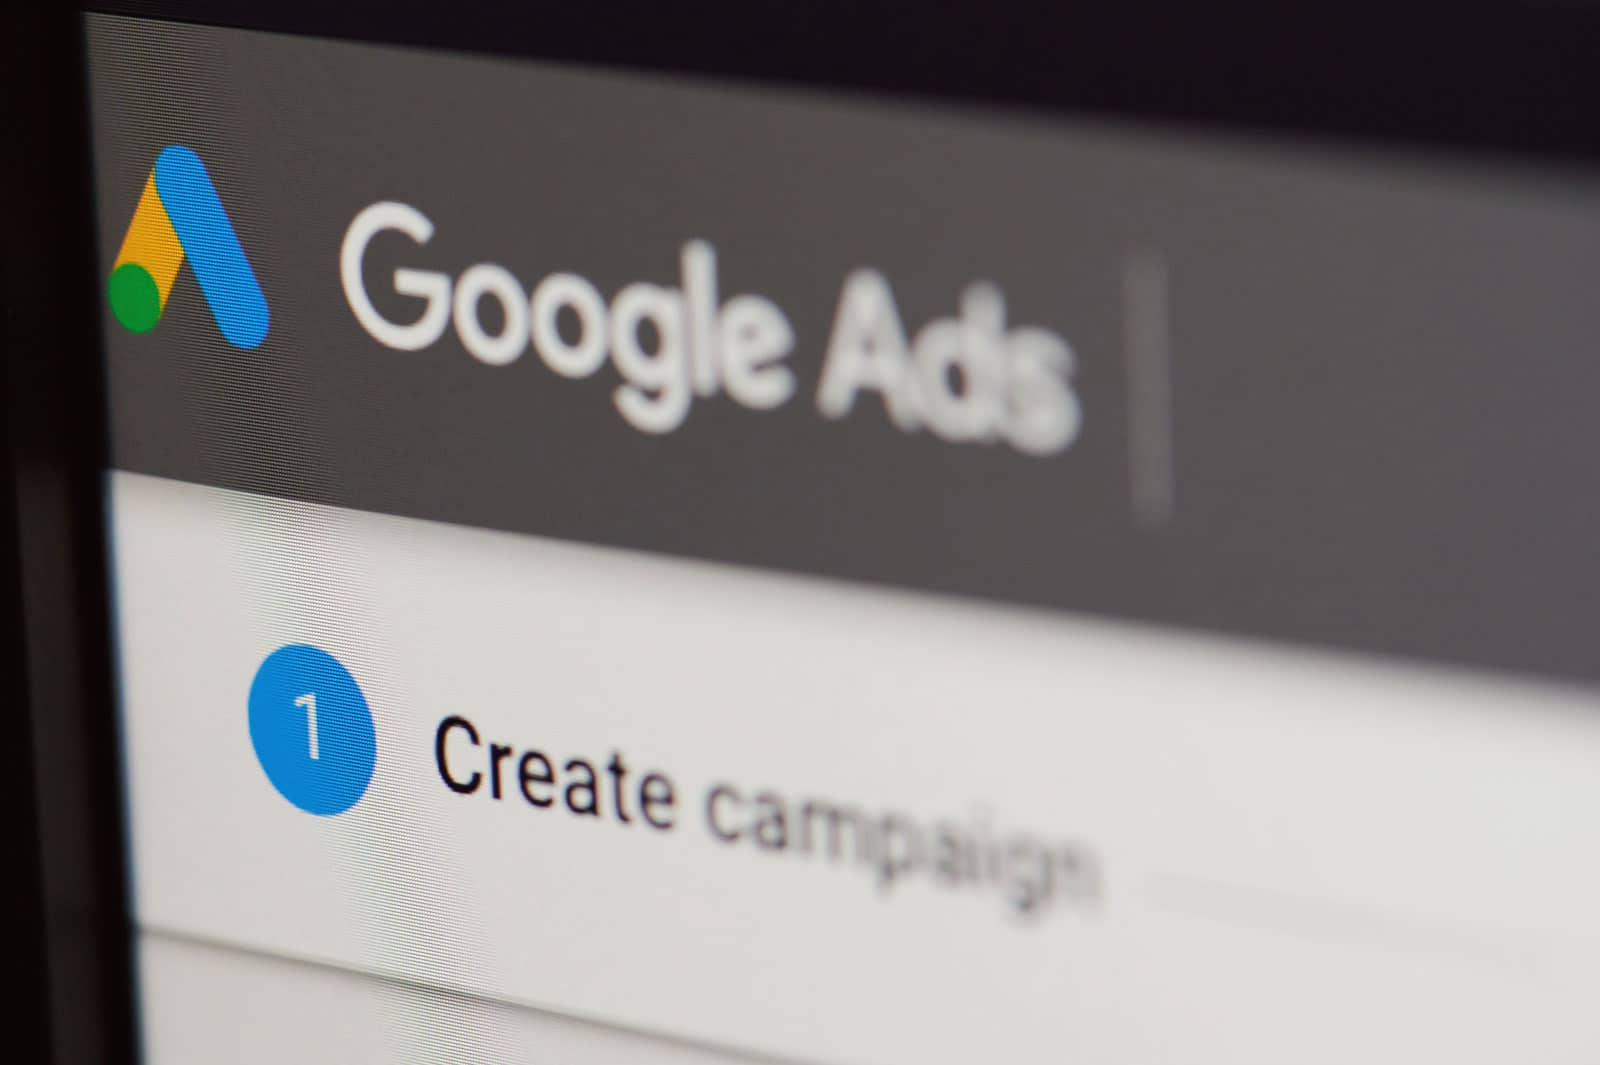 How to create a campaign in Google Ads